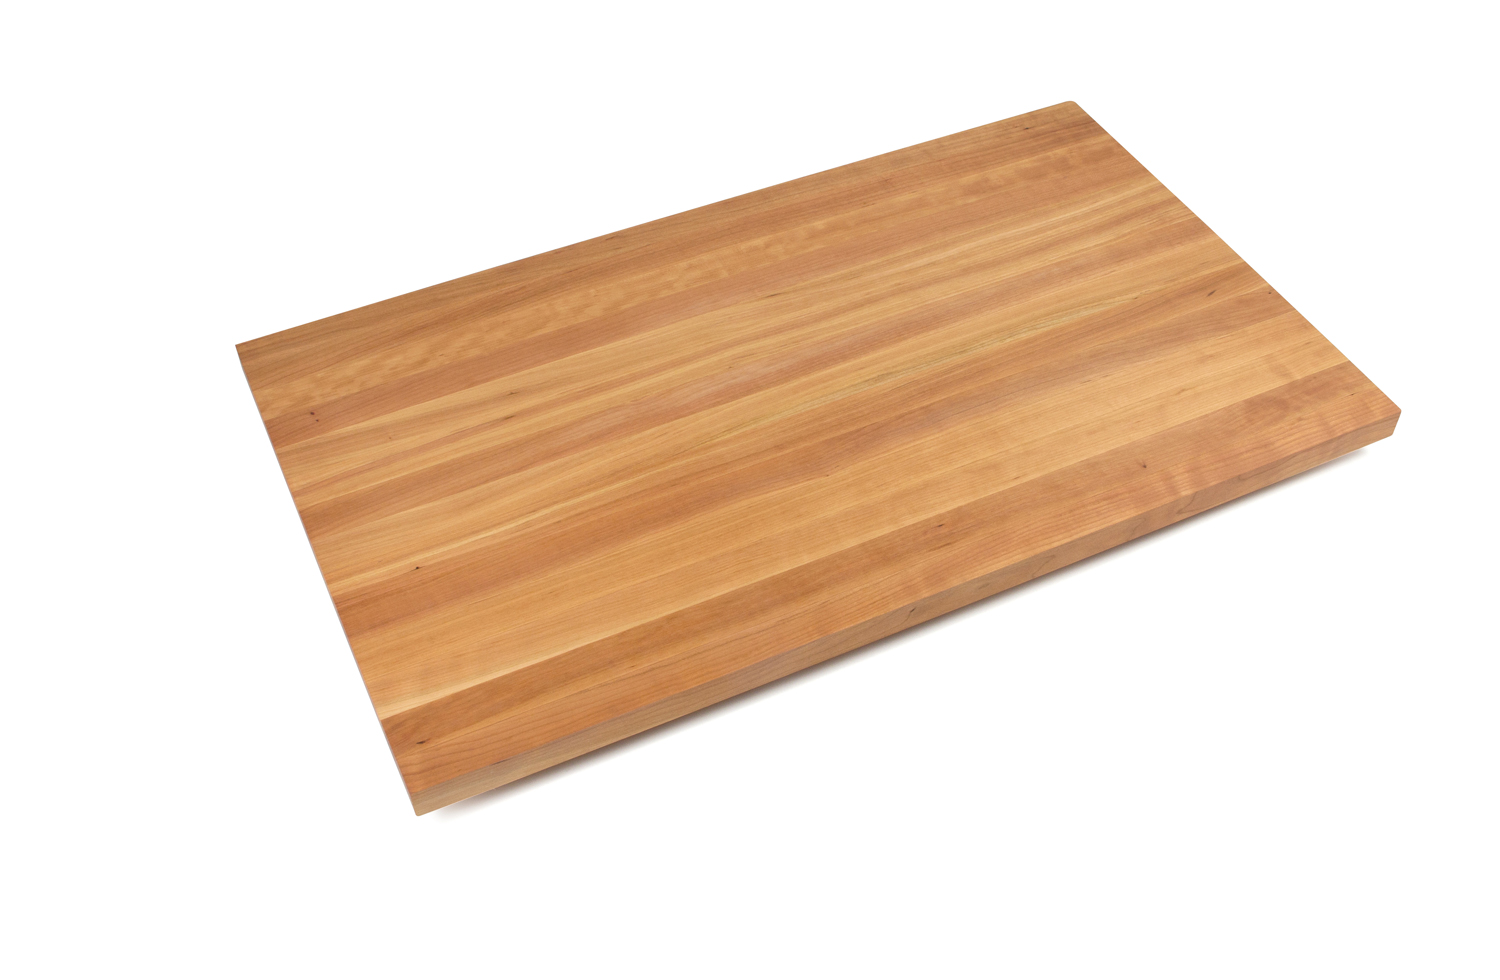 1.5 inch thick edge grain cherry butcher block countertops 27 inches wide, 1.5 inch thick